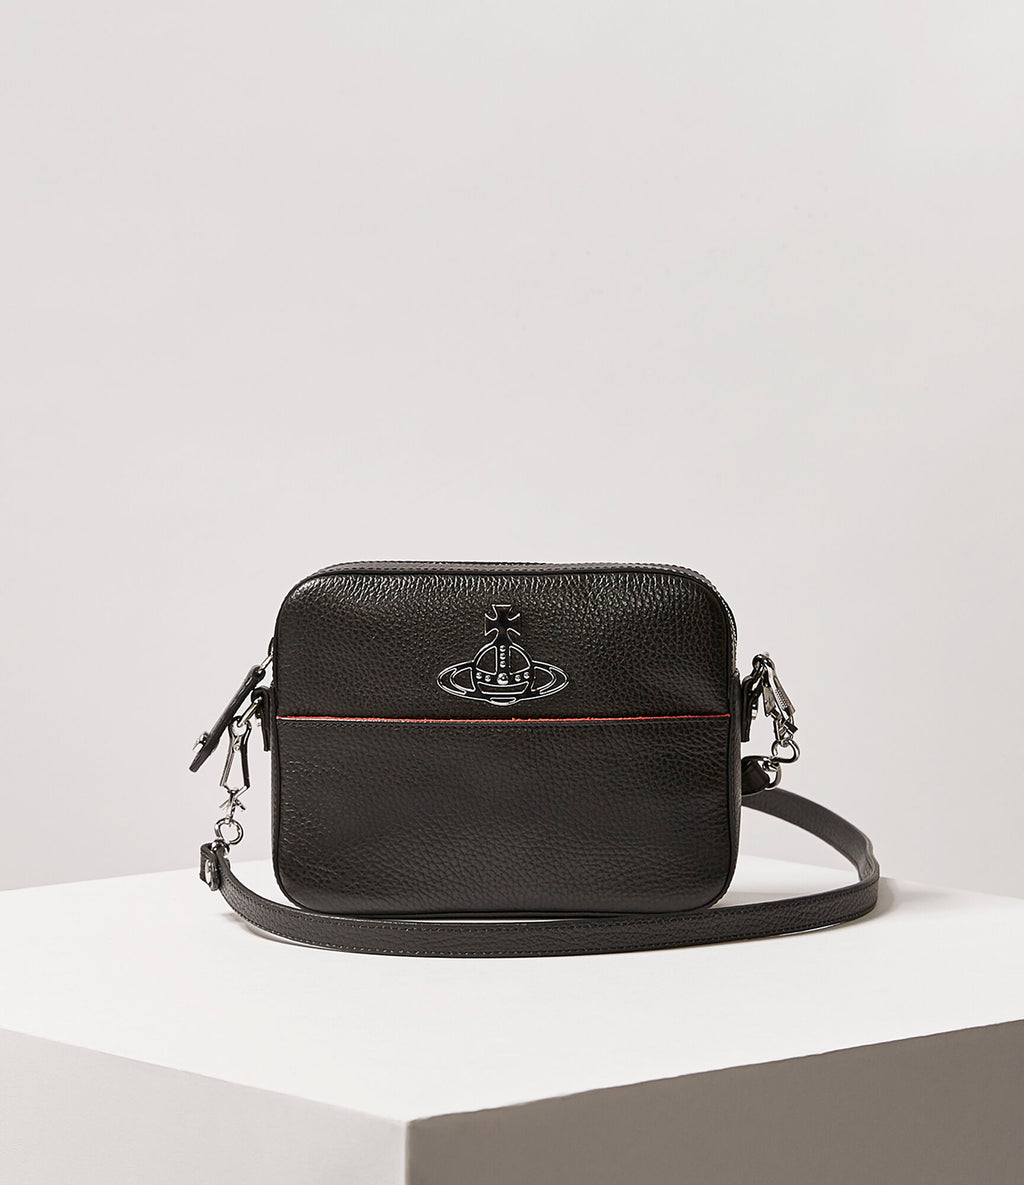 Rachel Black Crossbody Bag